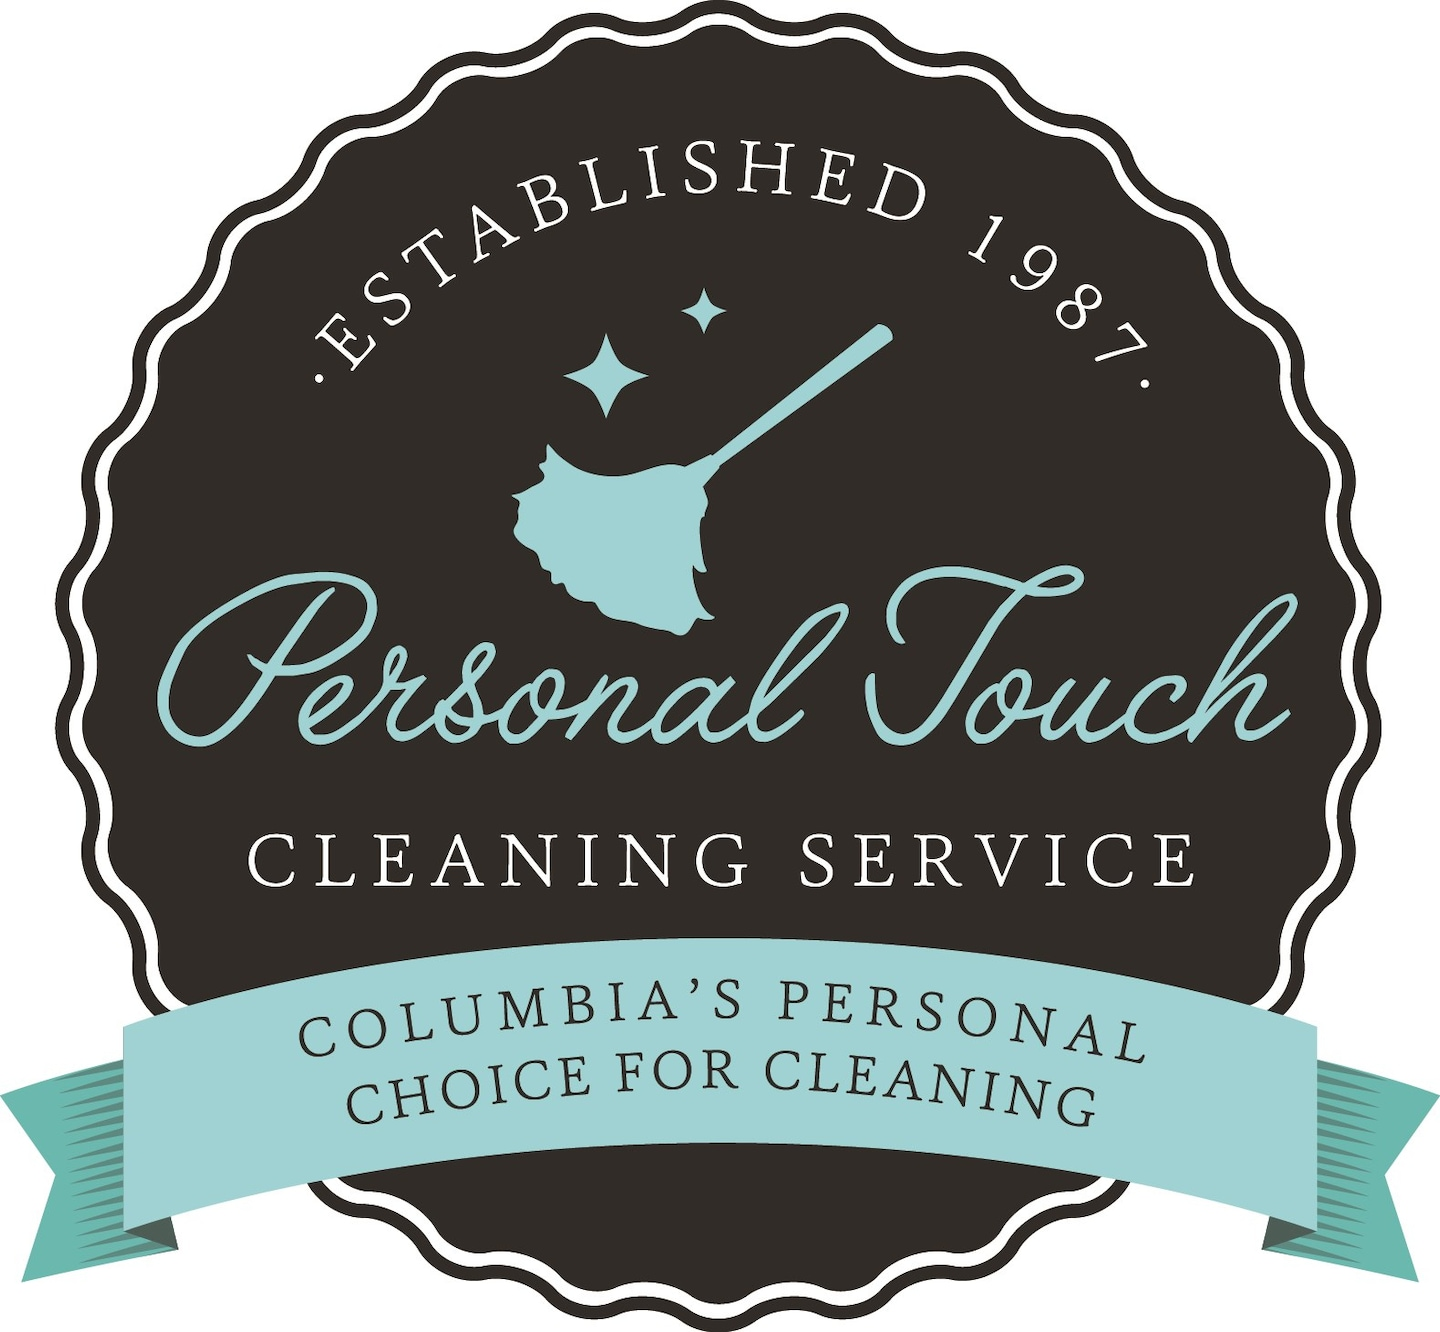 Personal Touch Cleaning Service LLC